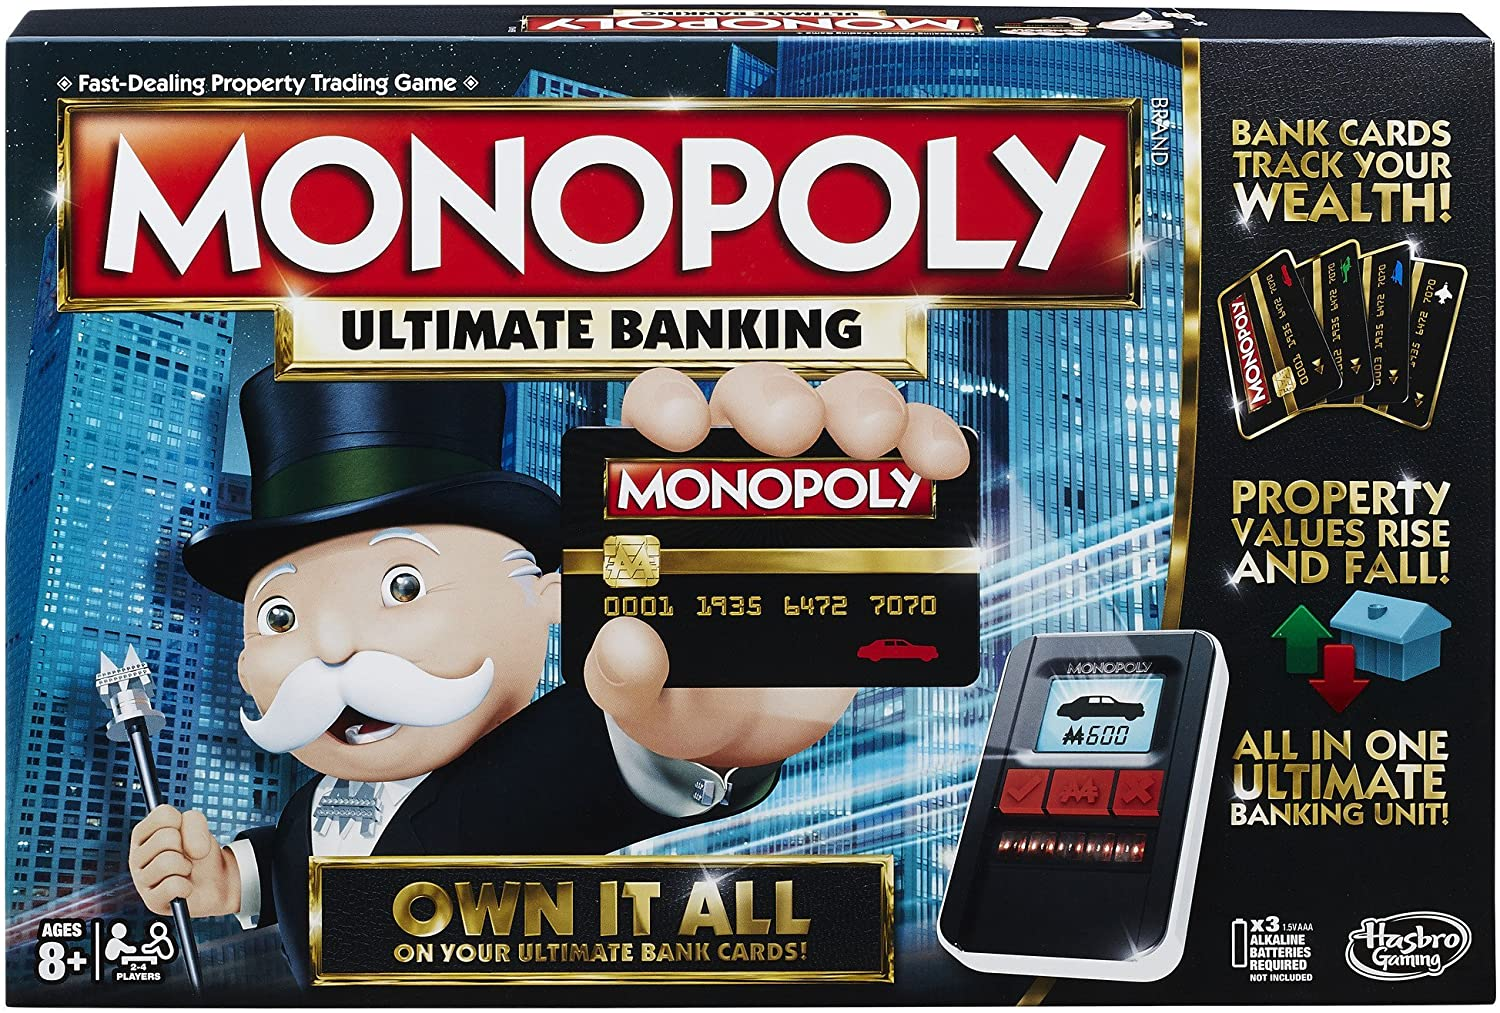 A picture of the Monopoly Ultimate Banking board game box.